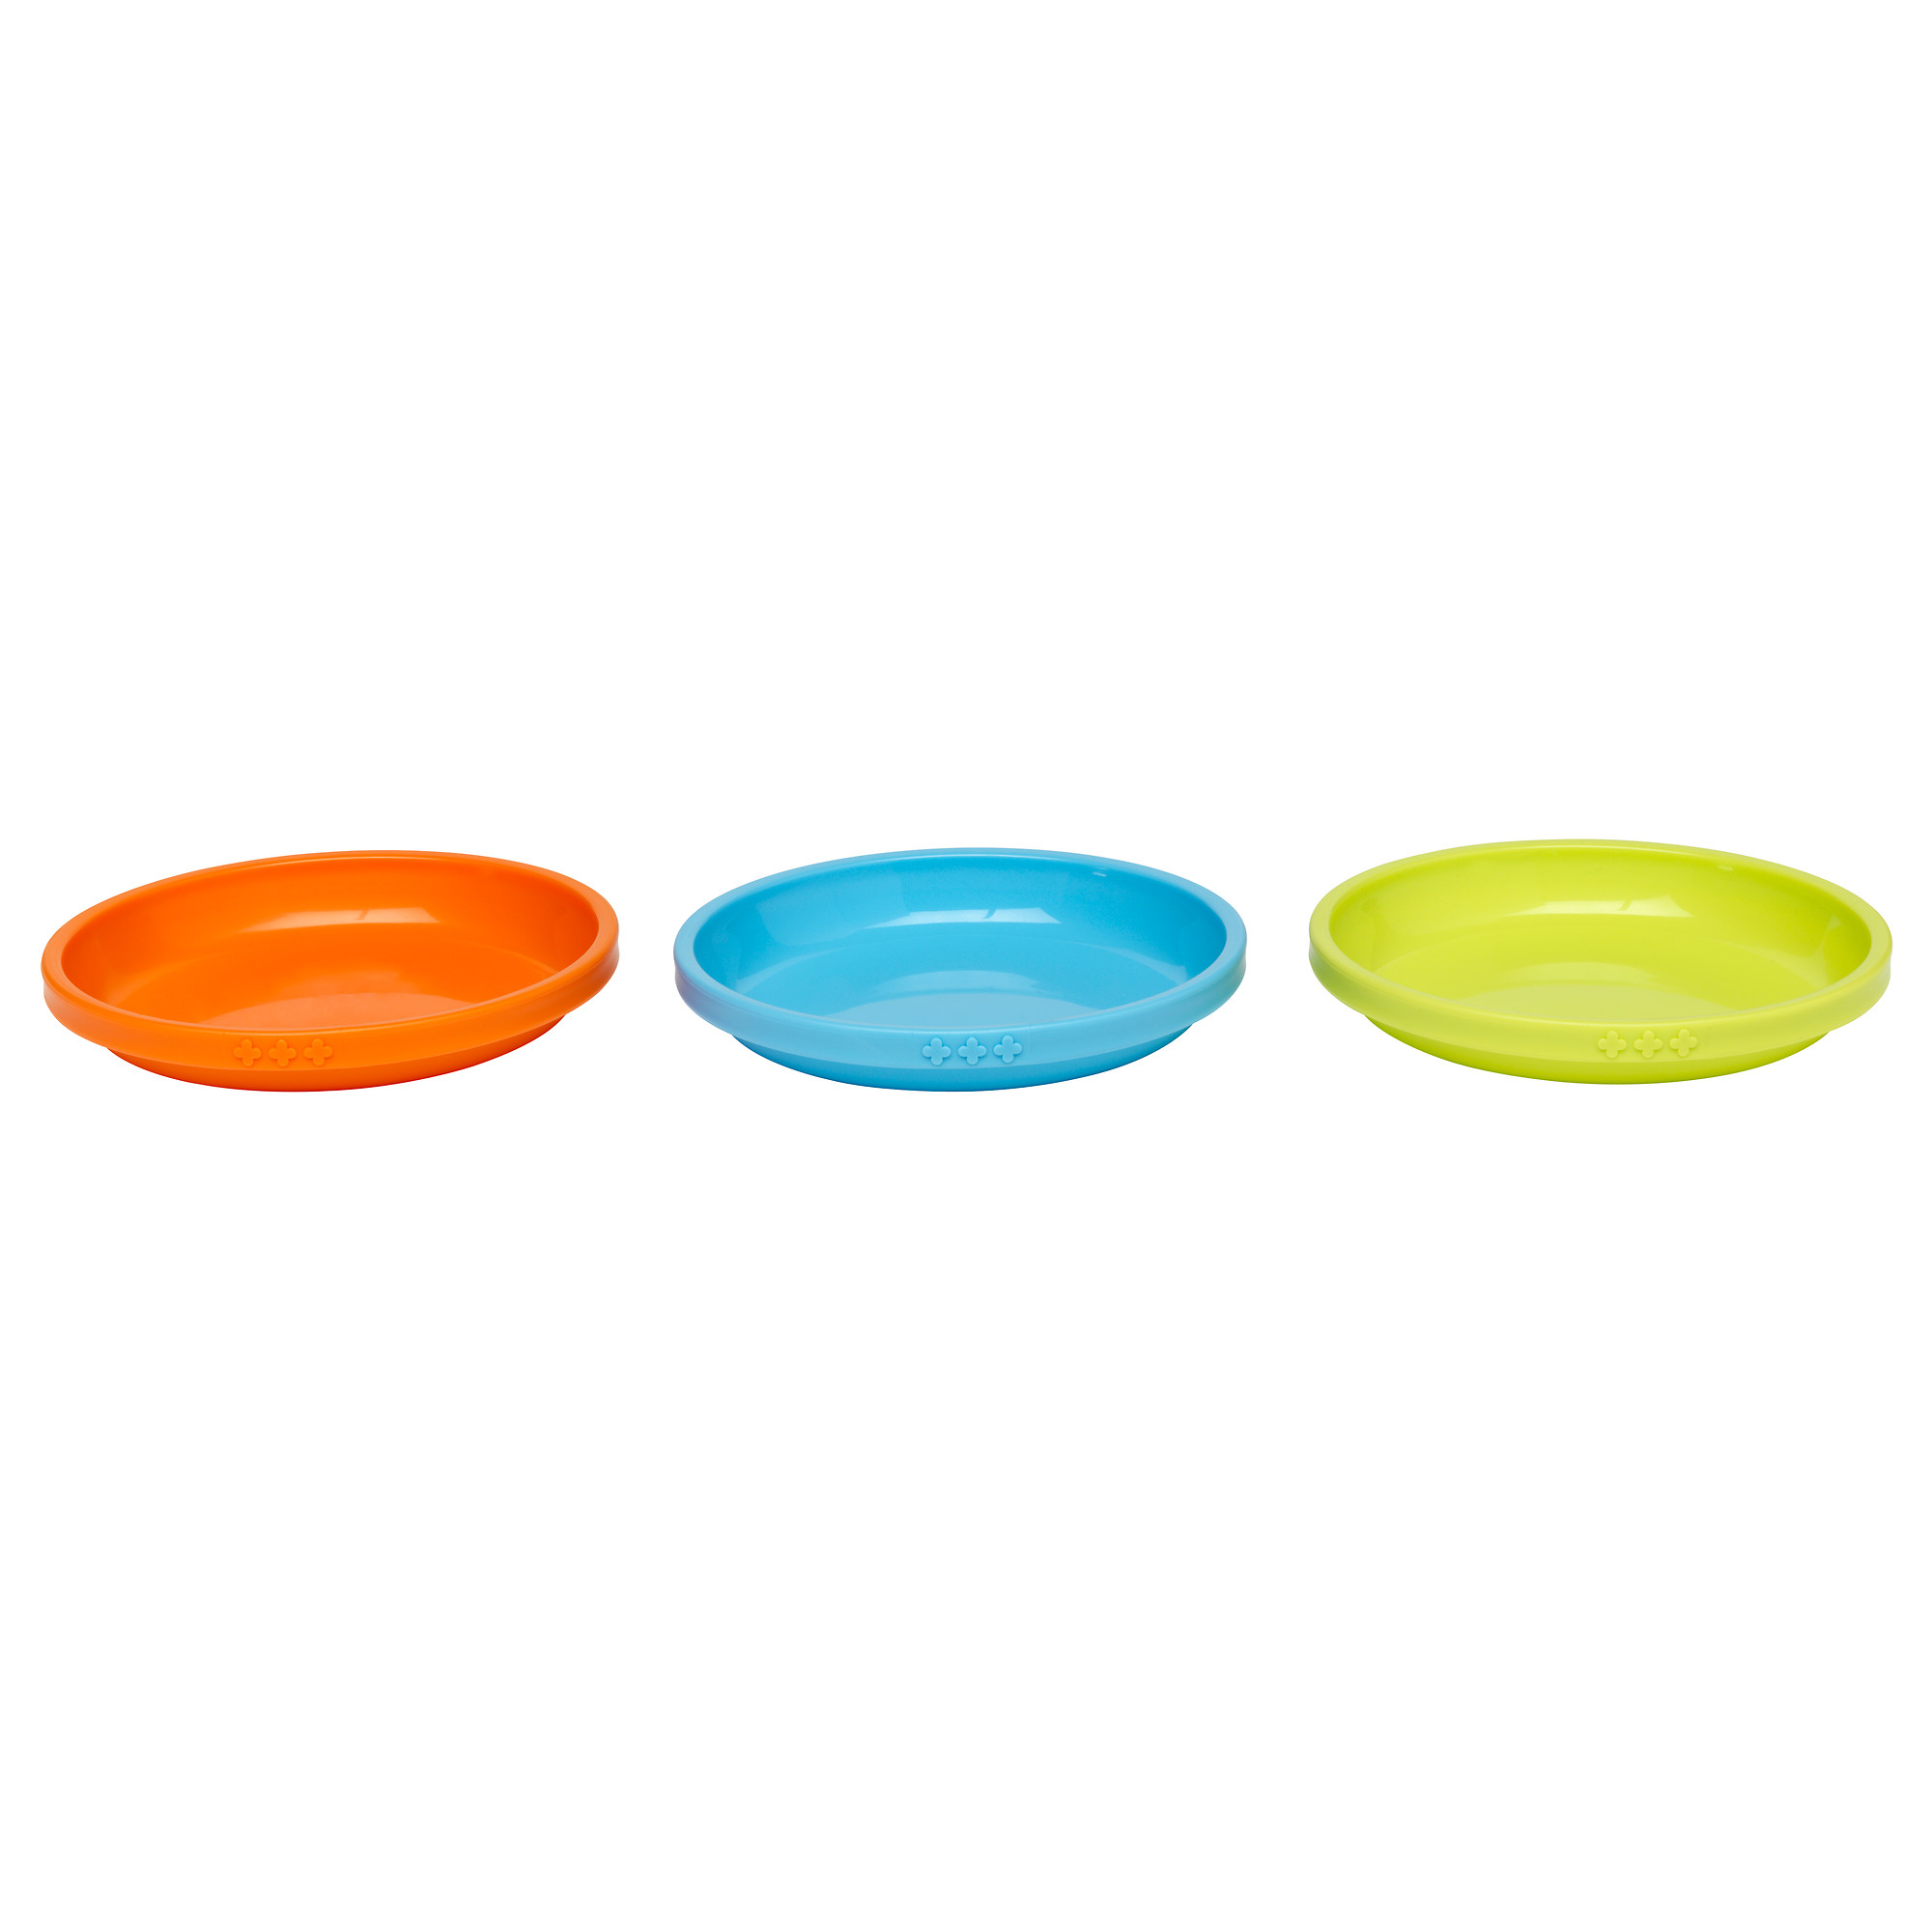 Cups, Dishes & Utensils Feeding Toddler/ Baby Melamine Devider Plate To Rank First Among Similar Products